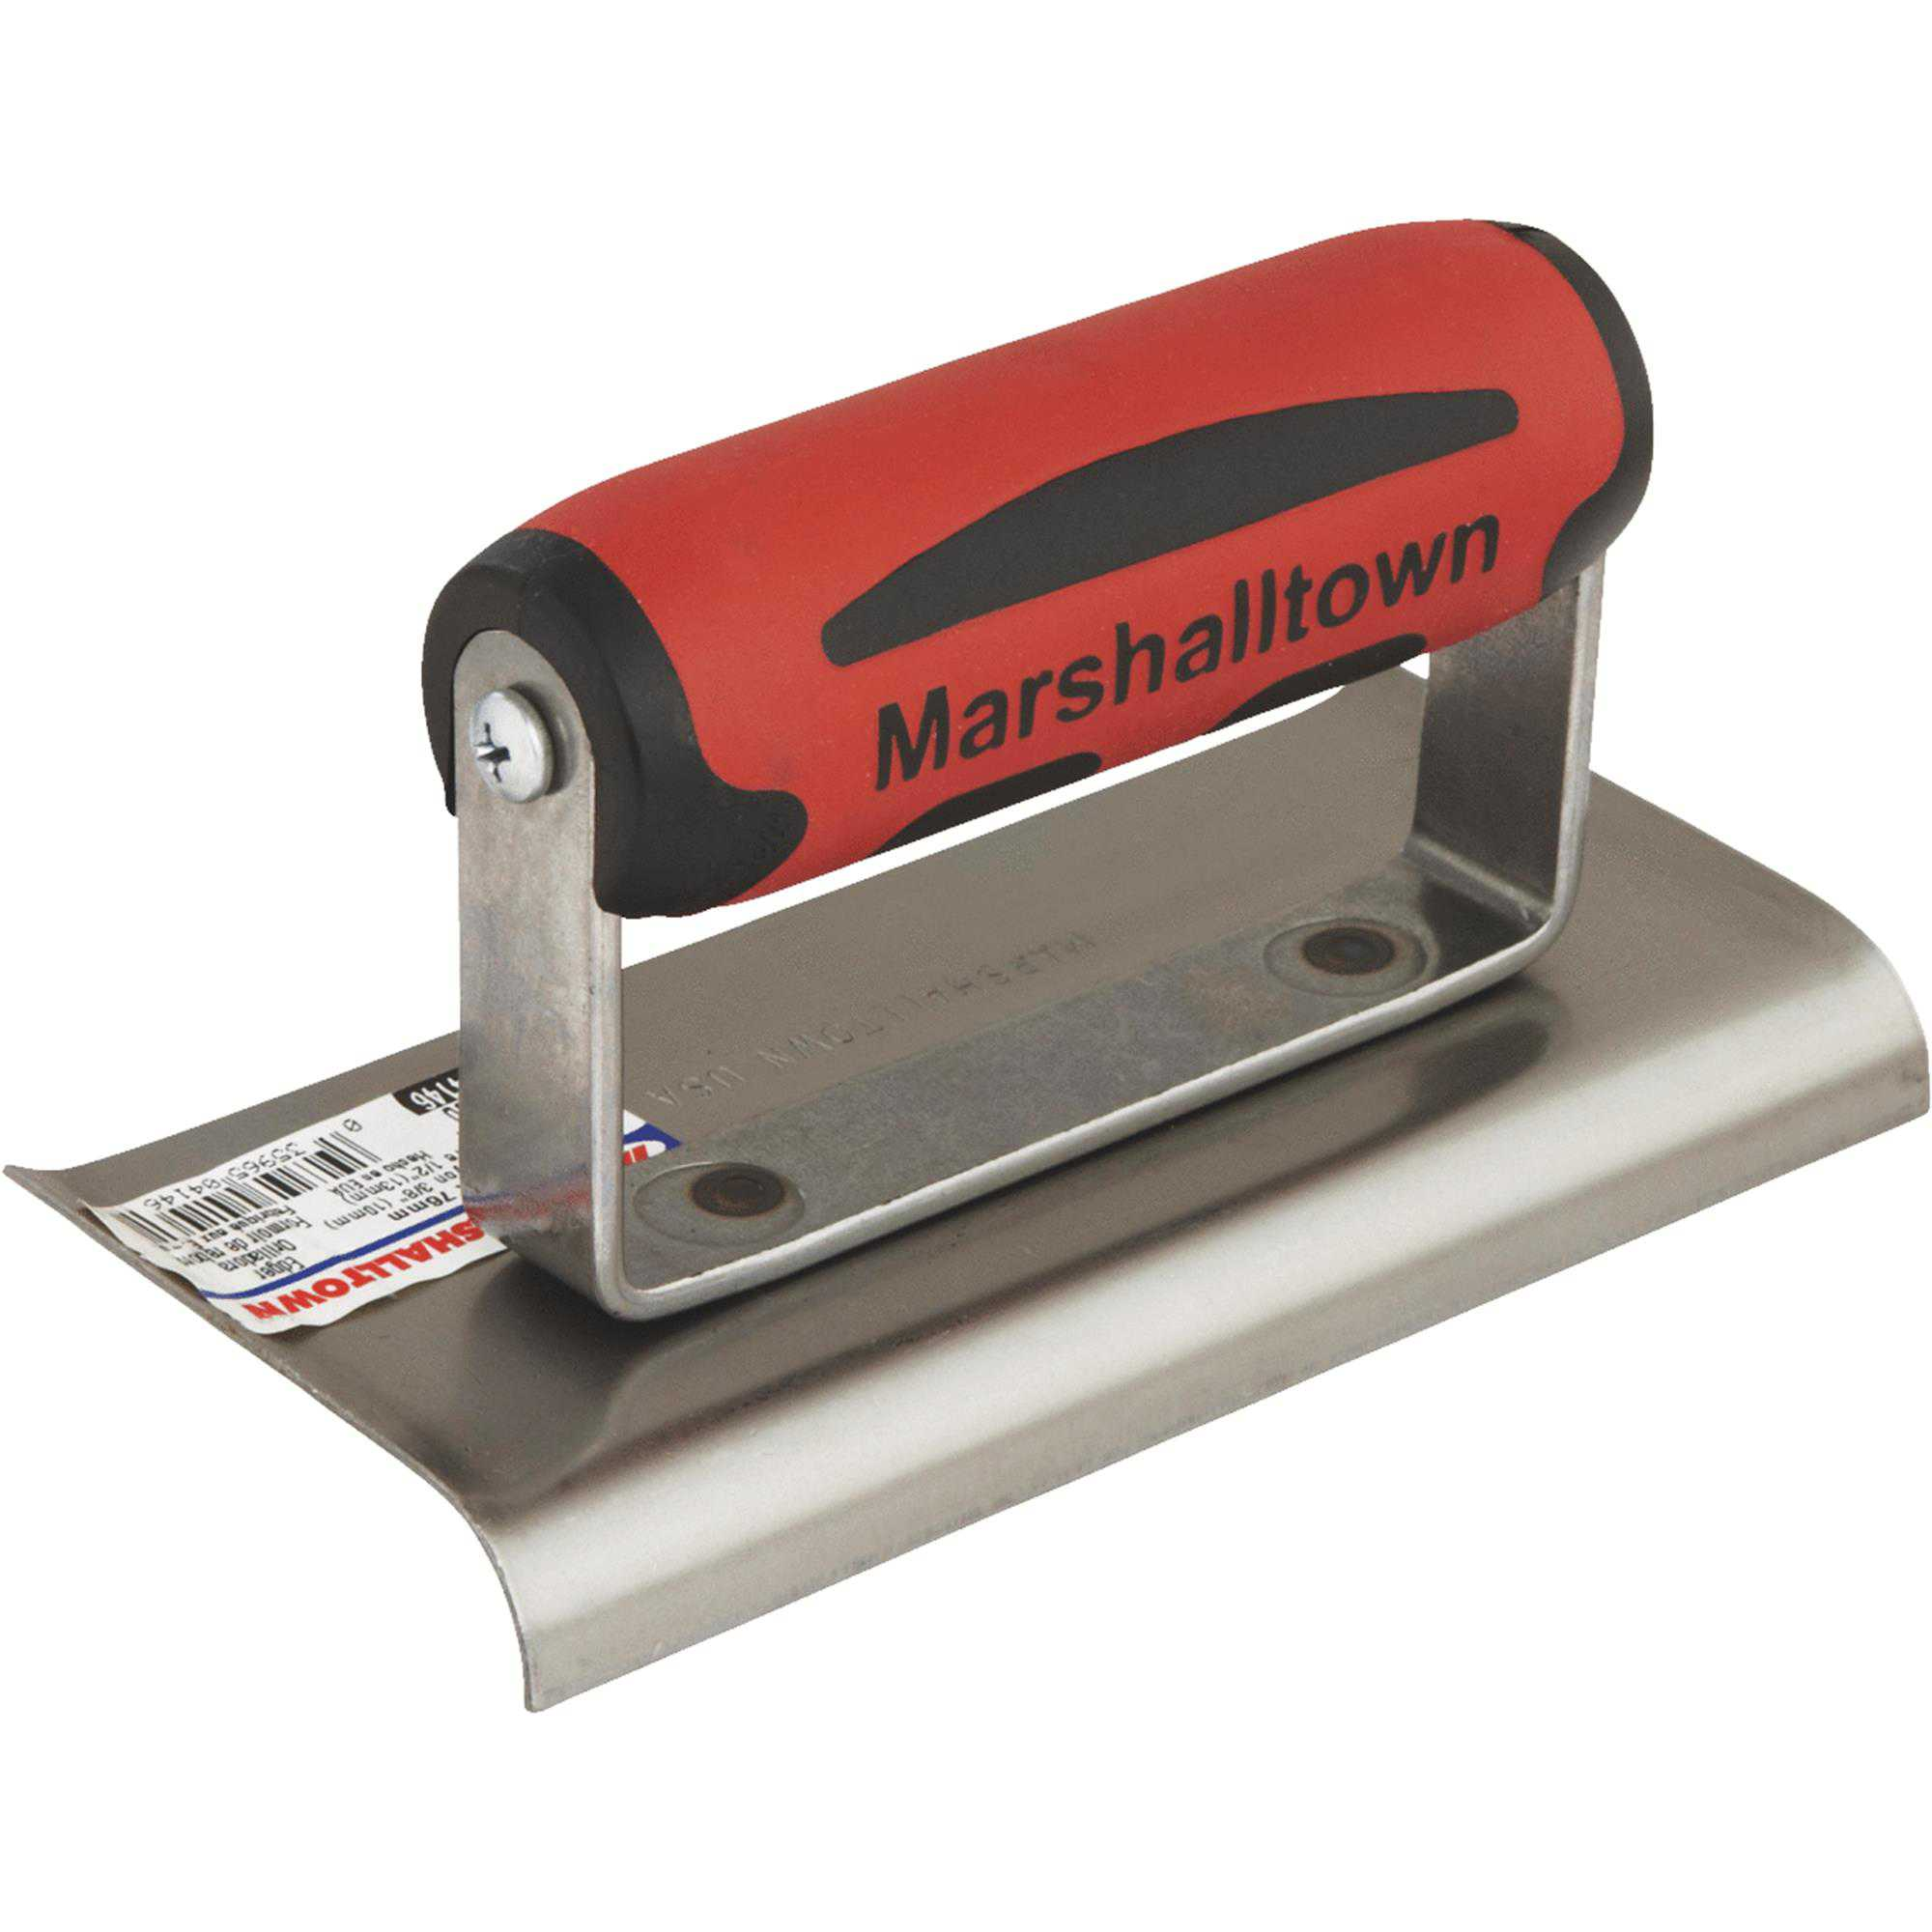 Marshalltown Cement End Edger